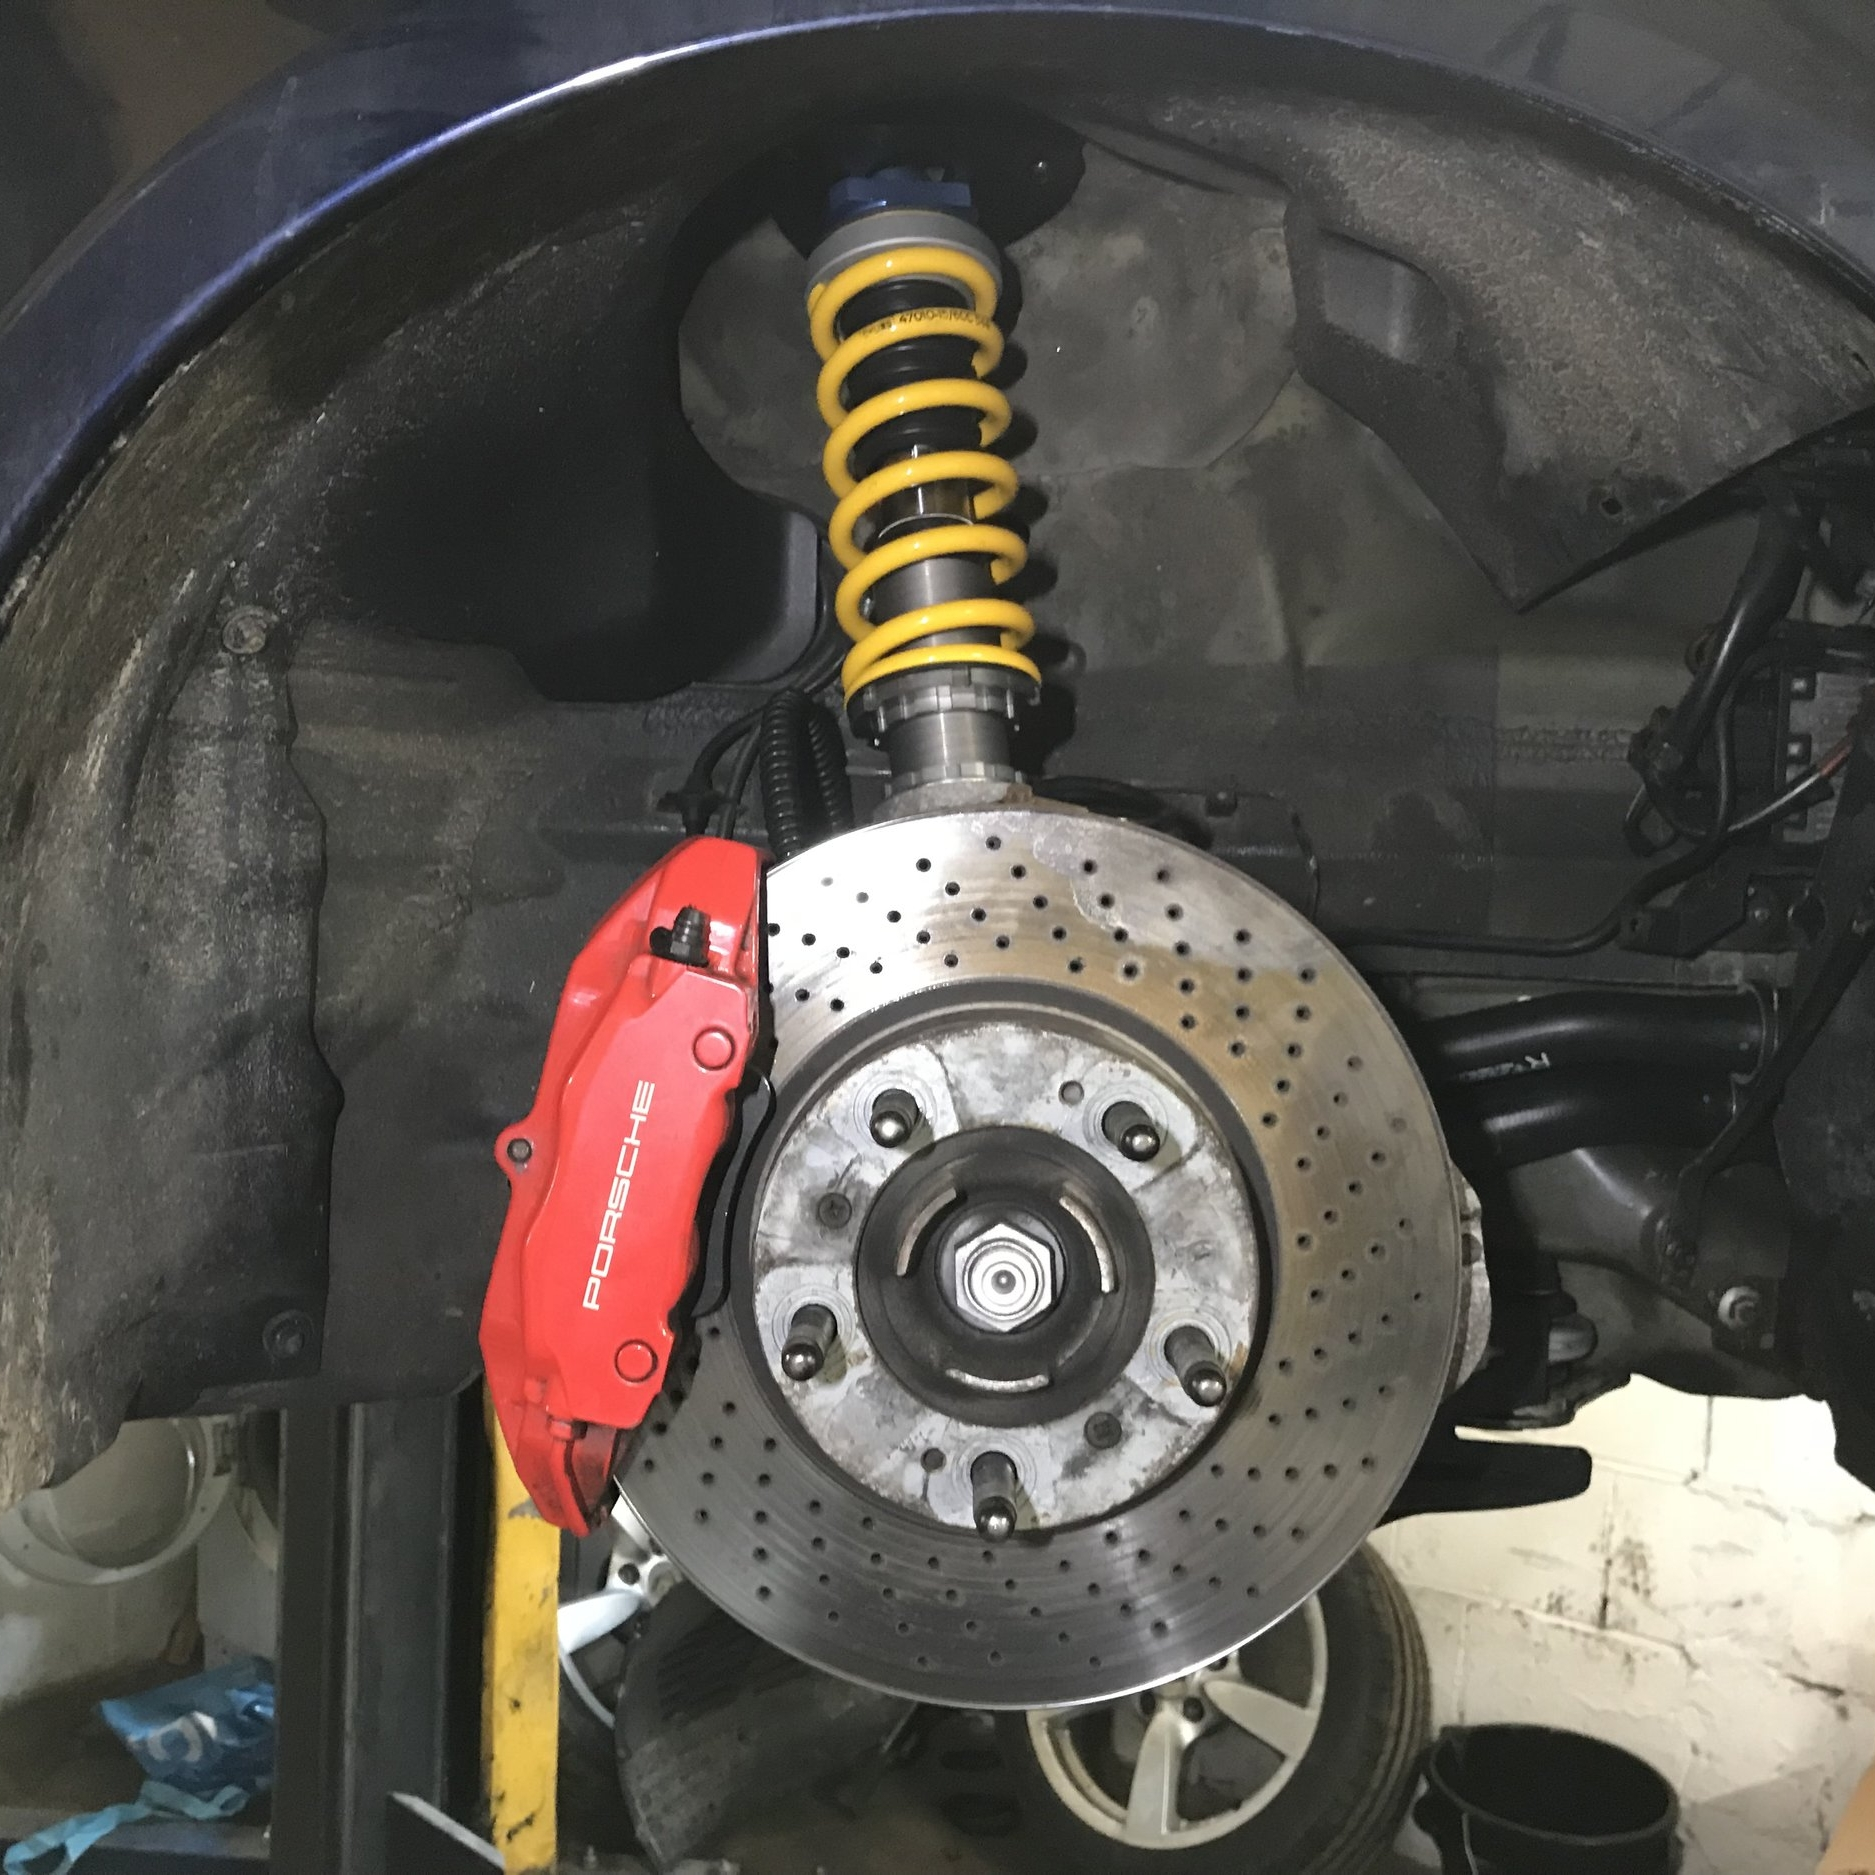 Ohlins Road & Track - Ohlins Road & Track dampers with DFV technology are perfect for a fast road 987 Cayman. Custom springs are fitted to optimise them for both fast-road use and trackdays.